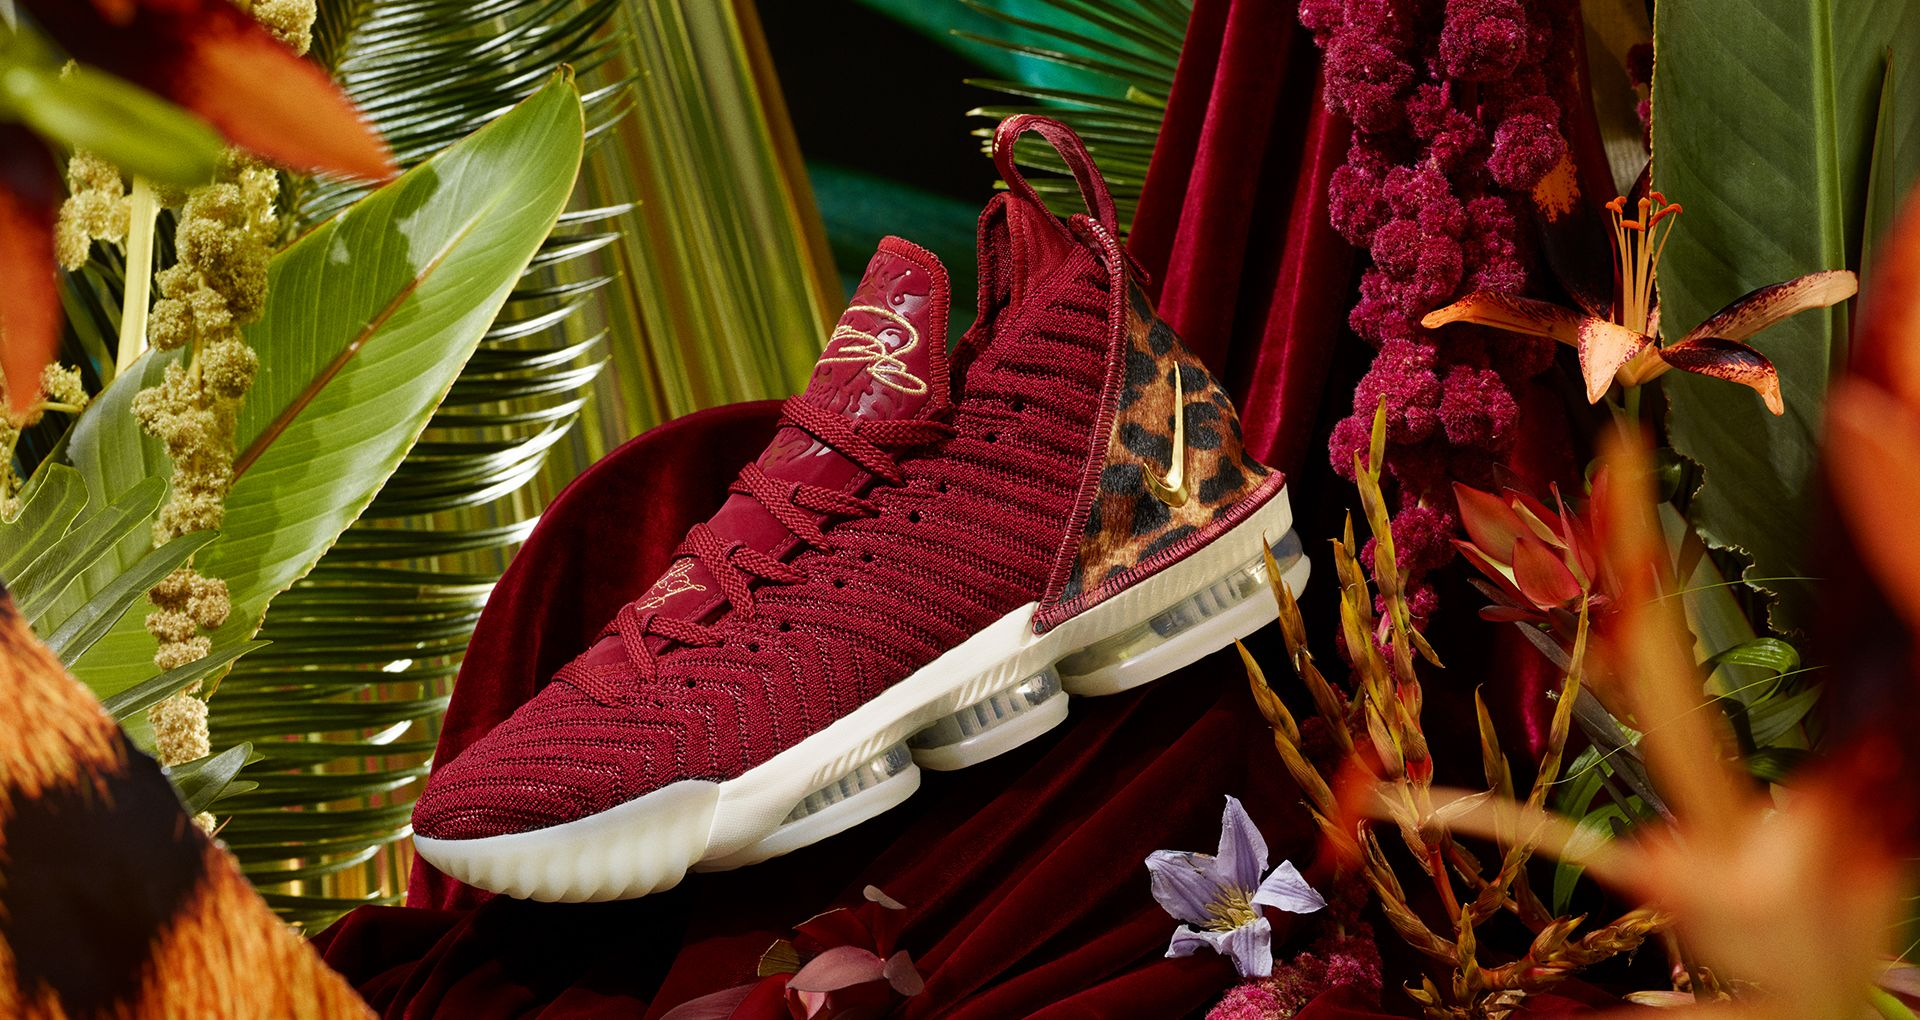 802cd8c421b5a Lebron 16 King  Team Red   Metallic Gold  Release Date. Nike+ SNKRS